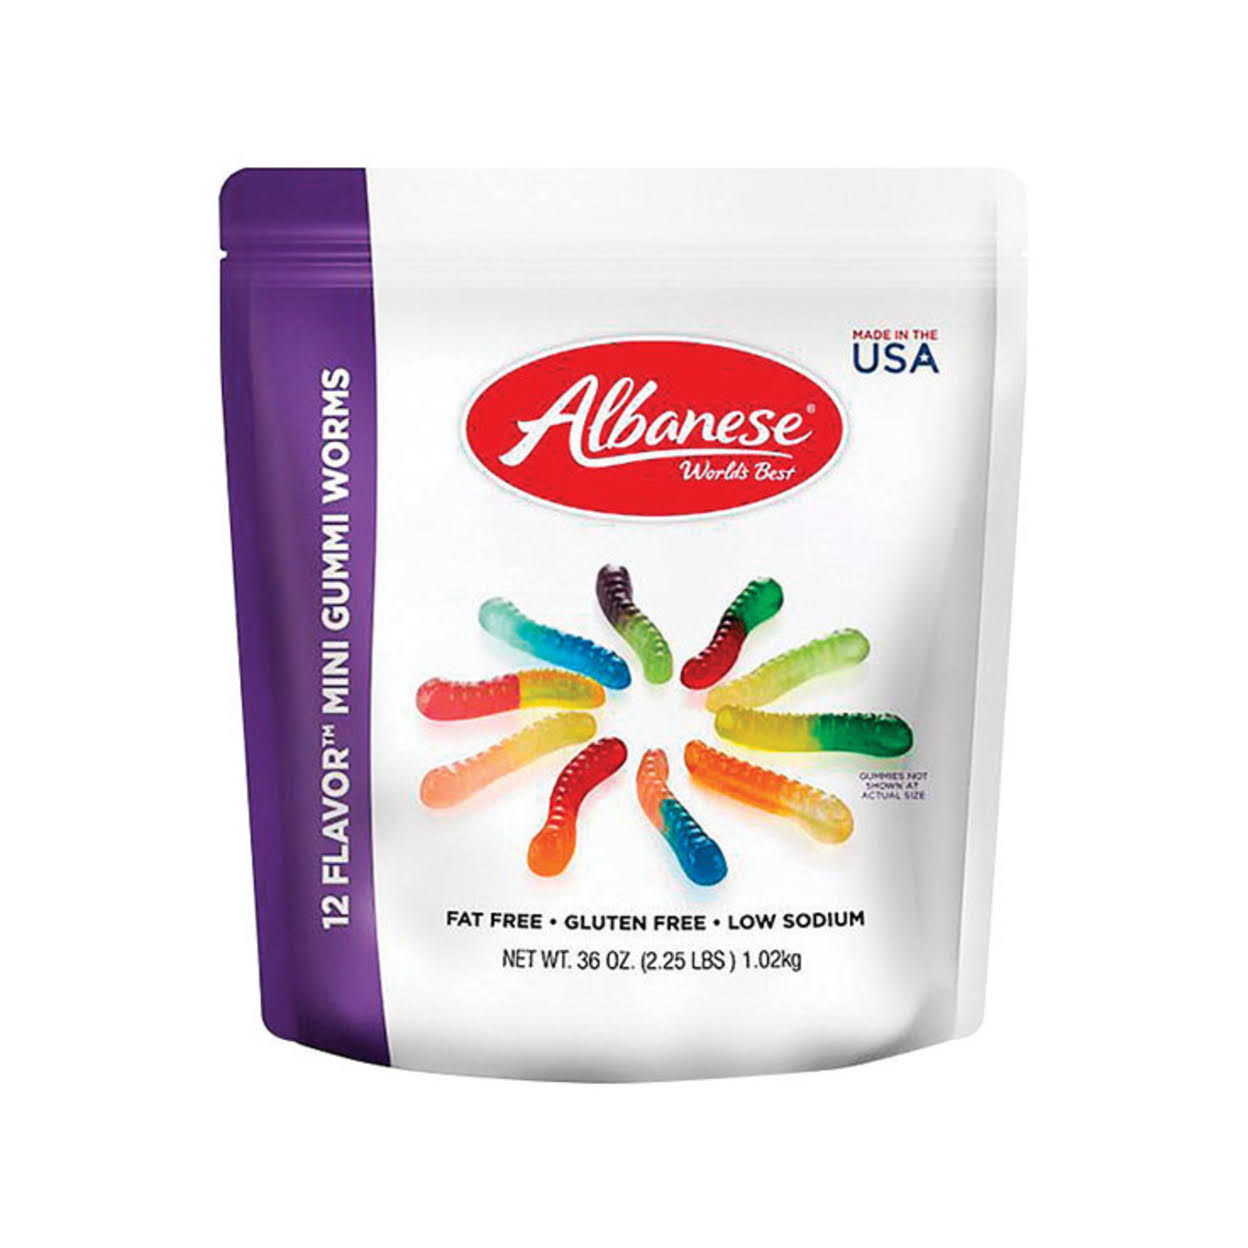 Albanese 12 Flavor Mini Gummi Worms Candy - 36oz